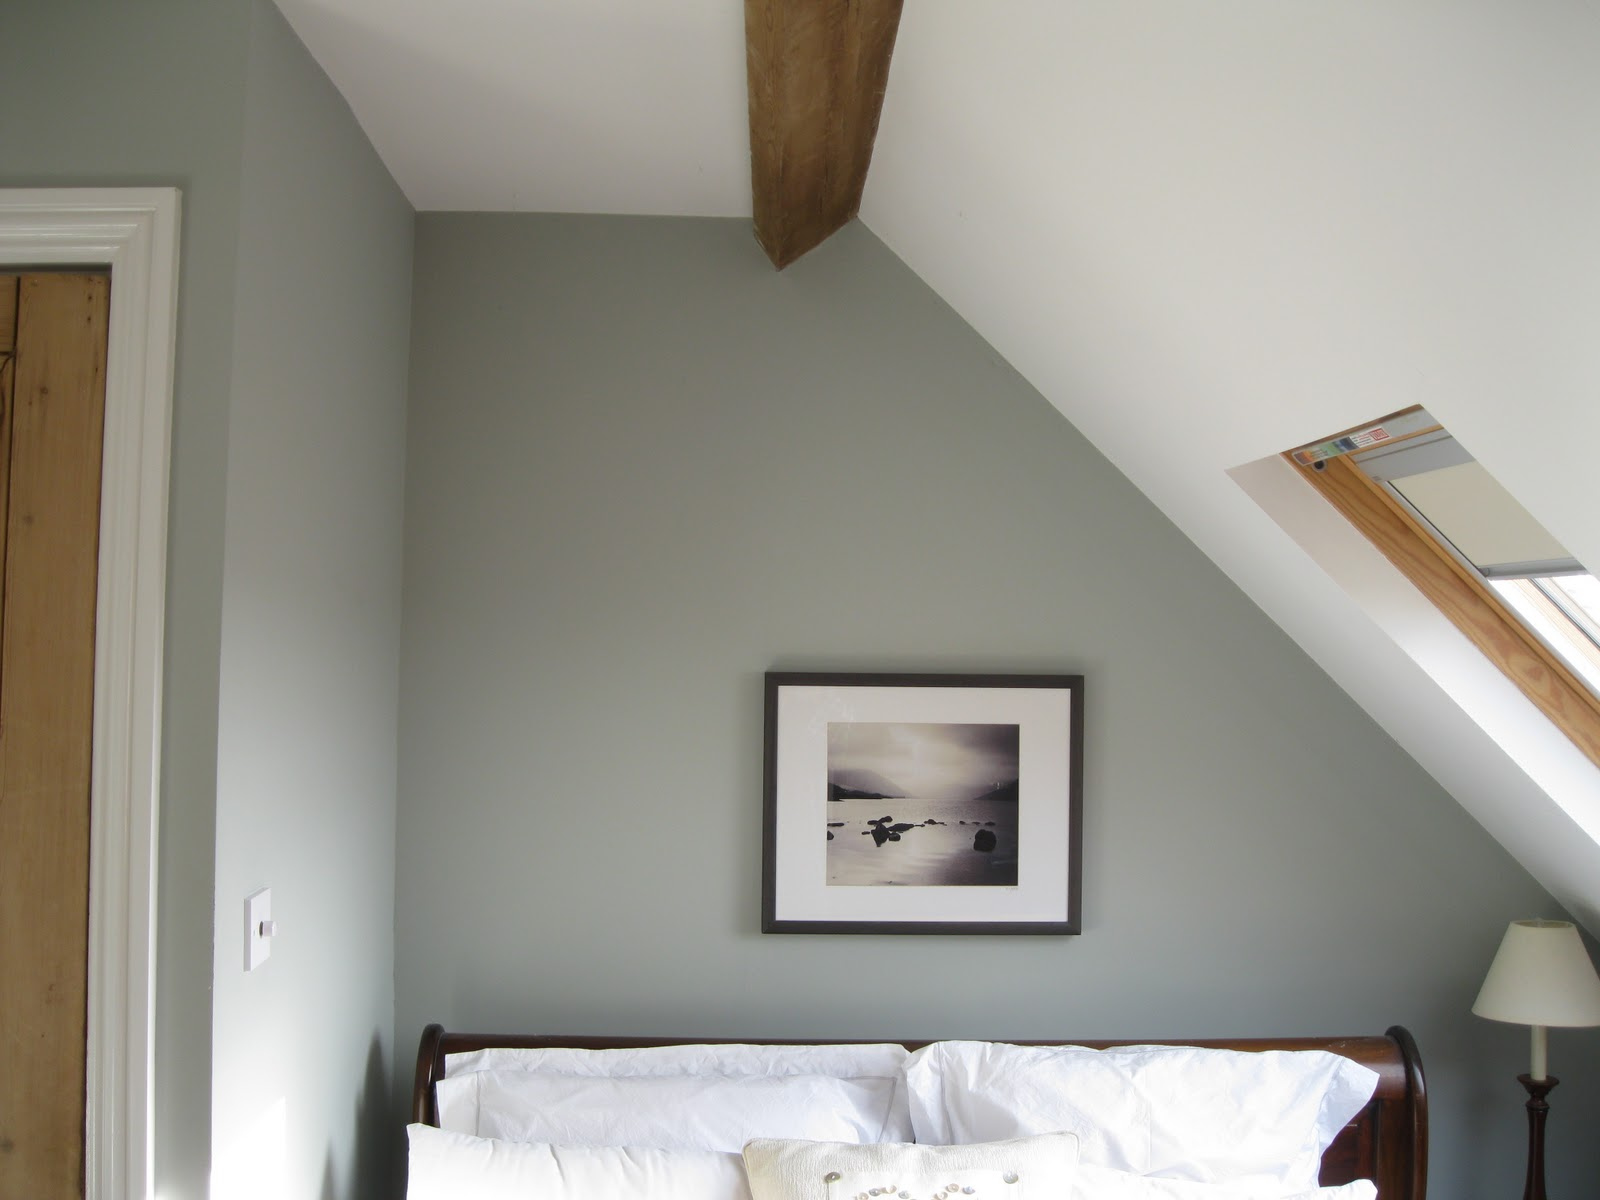 image grey green bedroom paint color ideas modern country style farrow and ball light blue case blue grey paint colors view